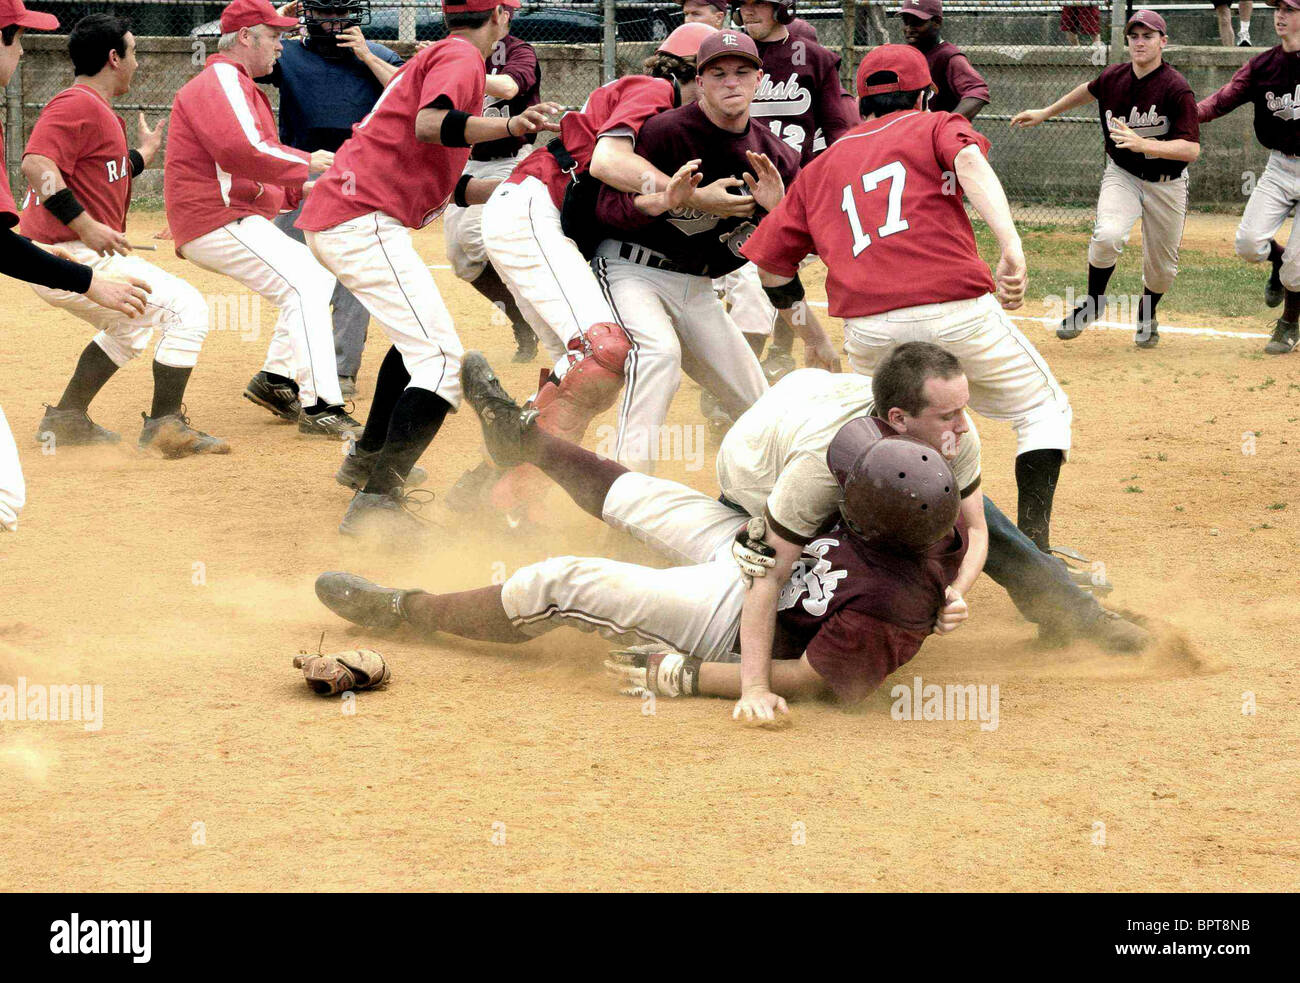 BASEBALL MATCH FIGHT SCENE BLACK IRISH (2007) - Stock Image